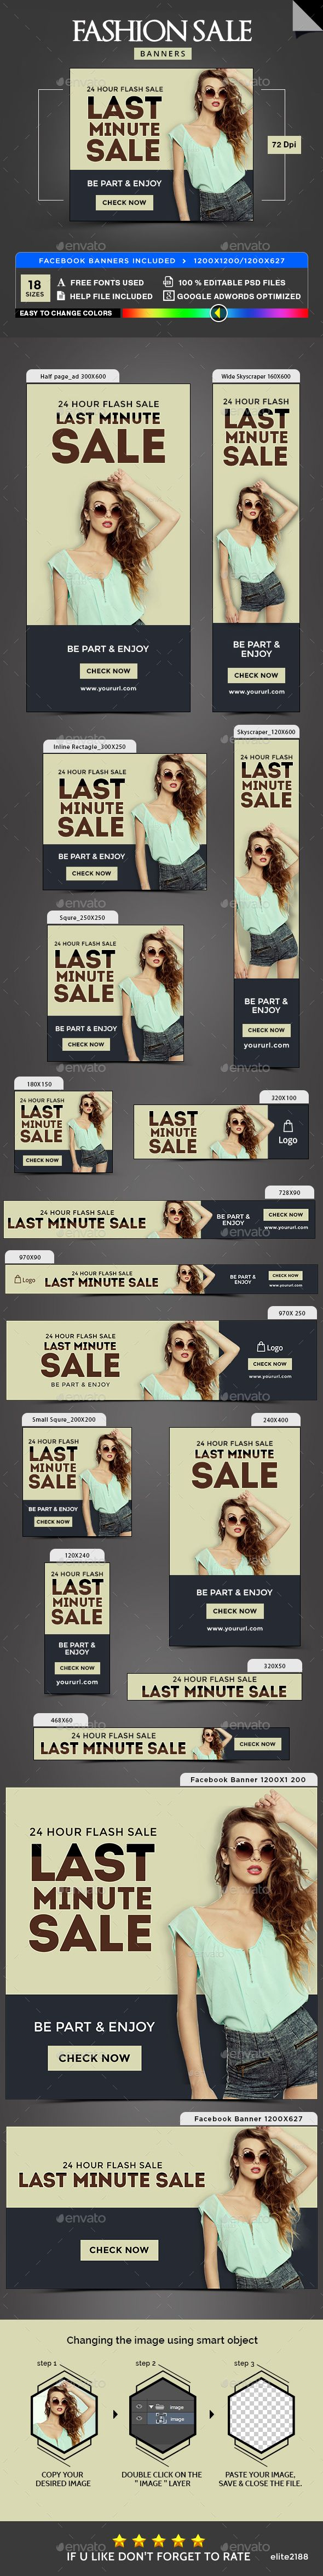 Fashion Sale Banners - Banners & Ads Web Elements Download here : https://graphicriver.net/item/fashion-sale-banners/19700062?s_rank=2&ref=Al-fatih